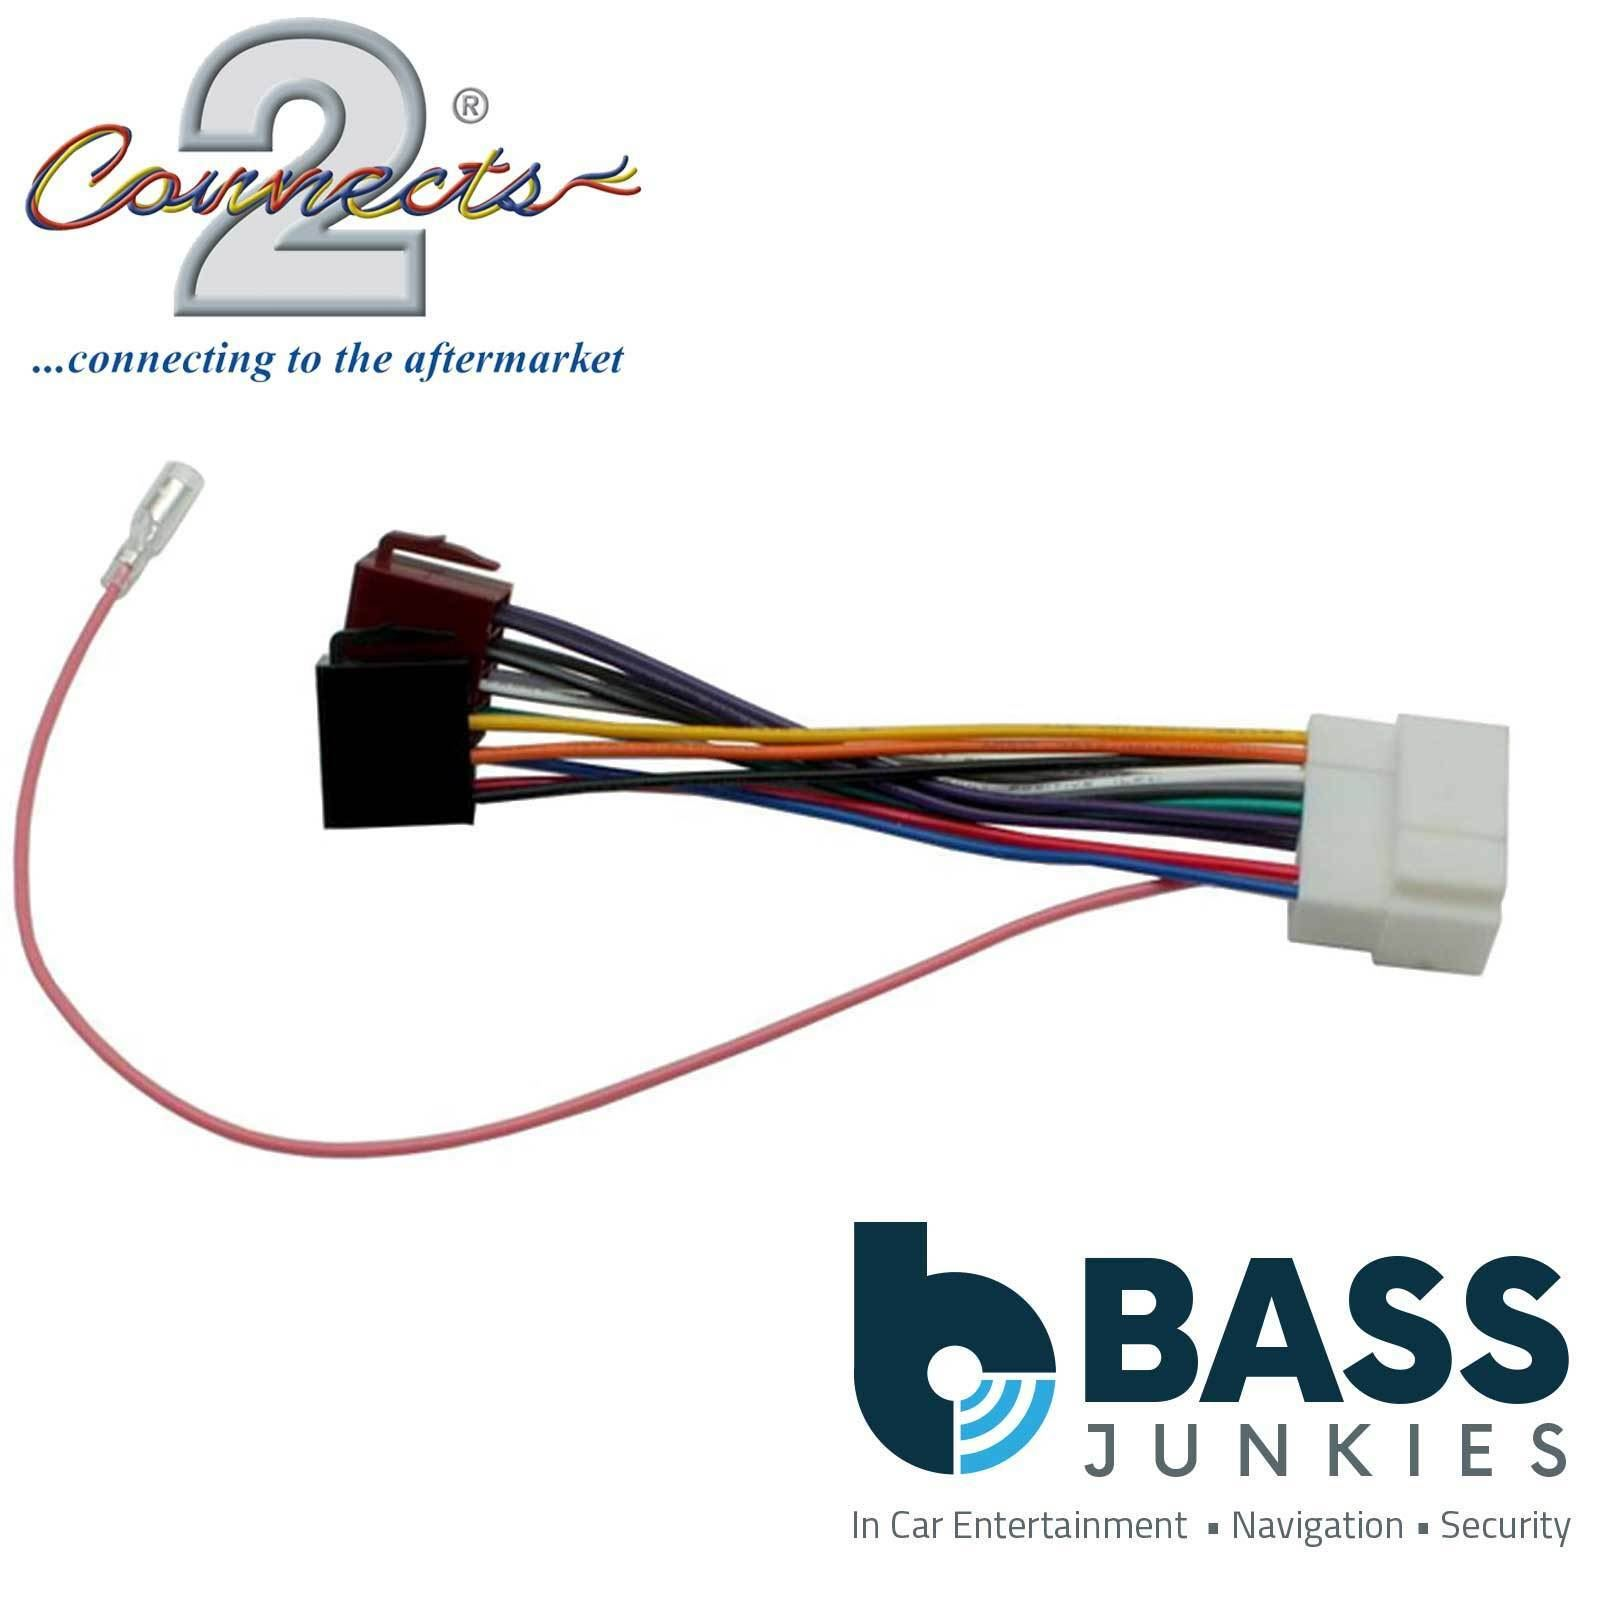 CT20HD02 SUZUKI IGNIS 2002 ONWARDS OEM SPECIFIC ISO HARNESS ADAPTER WIRING LEAD